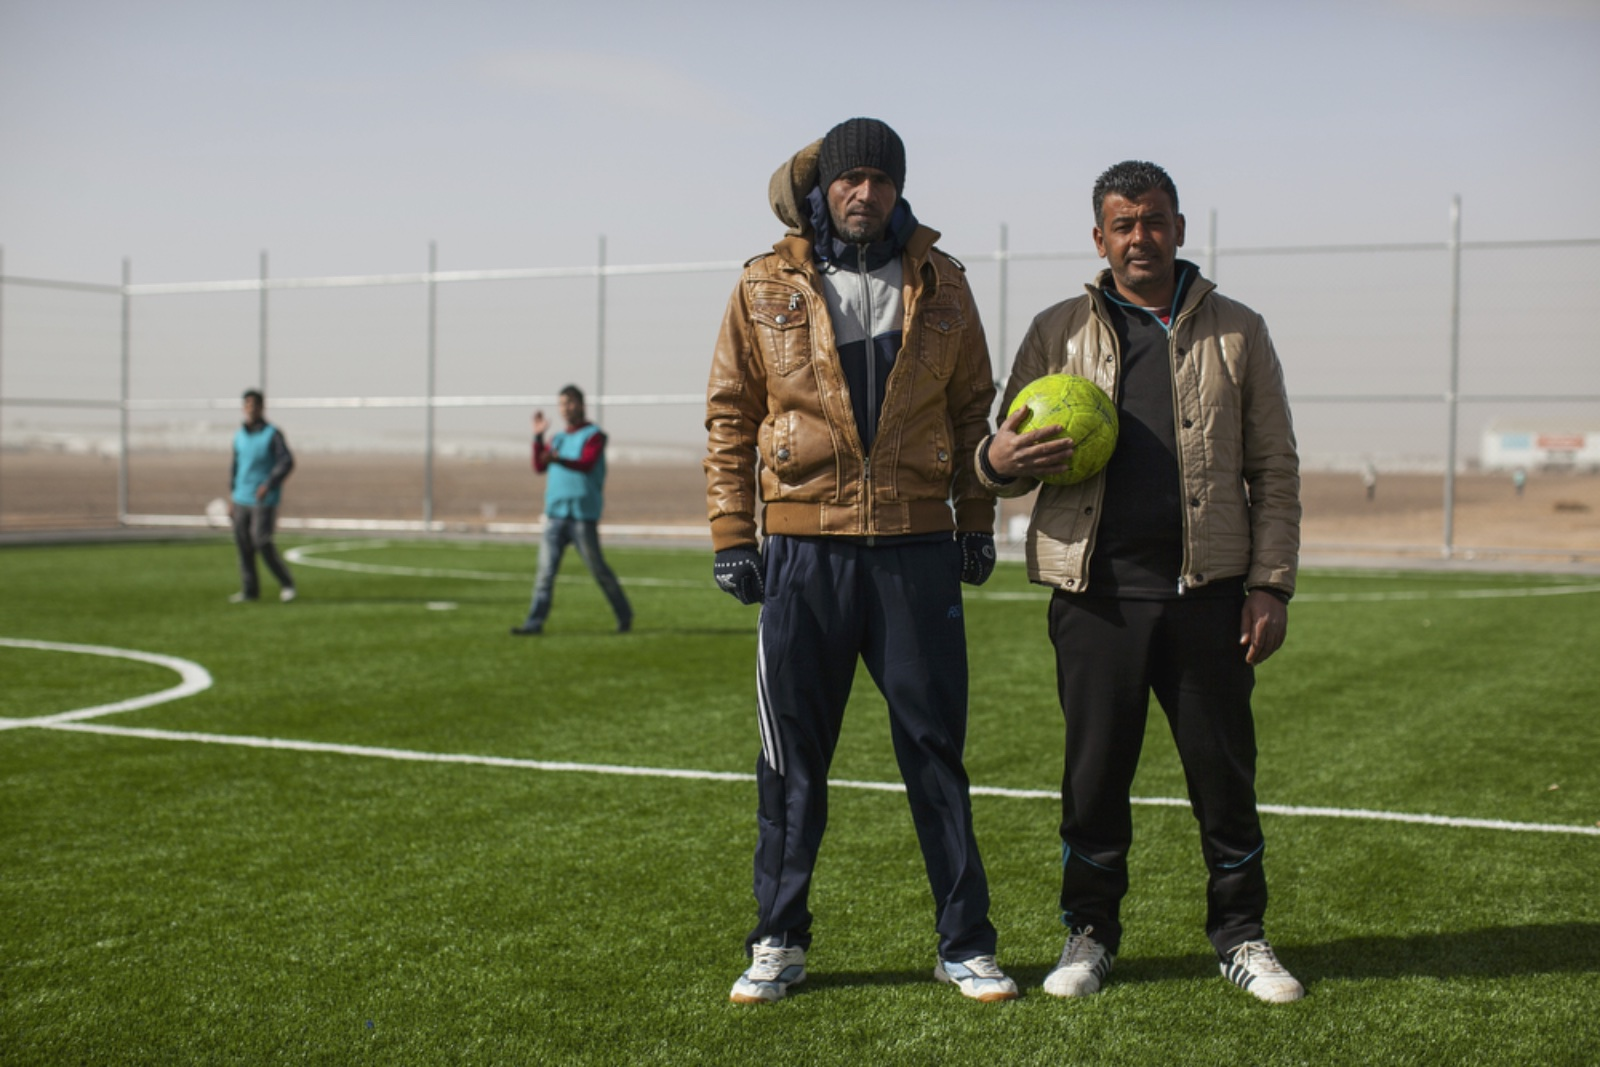 Mousa Hassan (left), 35, and Mamon Gabao (right), 37, both Syrian refugees from Daraa and coaches trained by the Premier League for the soccer program, pose for a portrait during a soccer match on one of the pitches provided by World Vision at Azraq refugee camp, January 19, 2016. Recreation soccer teams are formed to provide a better quality of life for the children living in the camp. (Christopher Lee/GroundTruth)